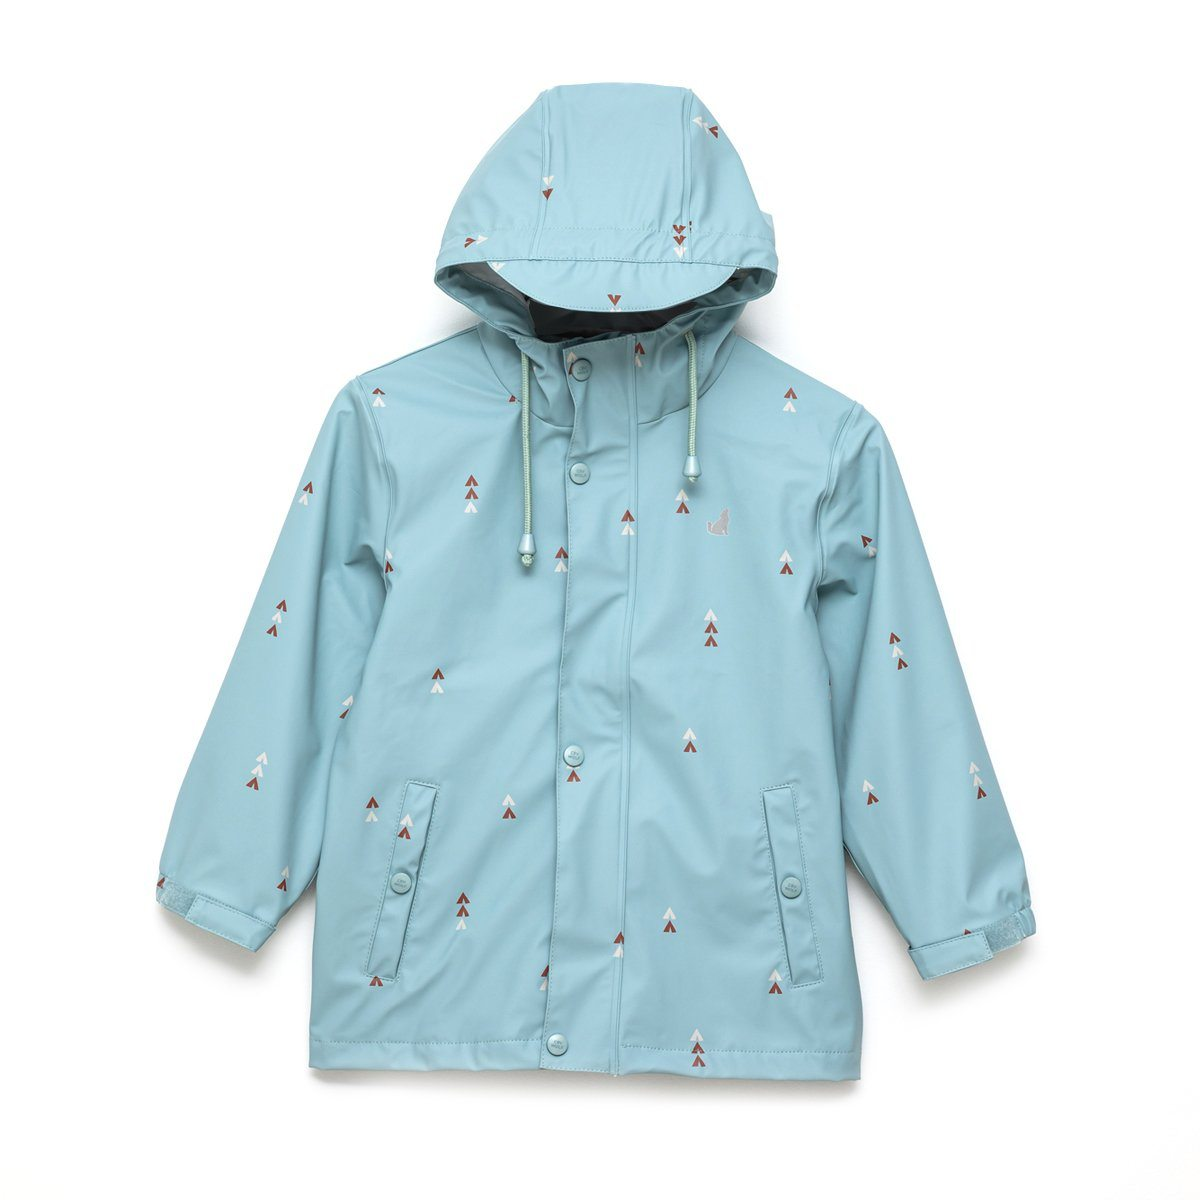 Play Jacket (Campsite)